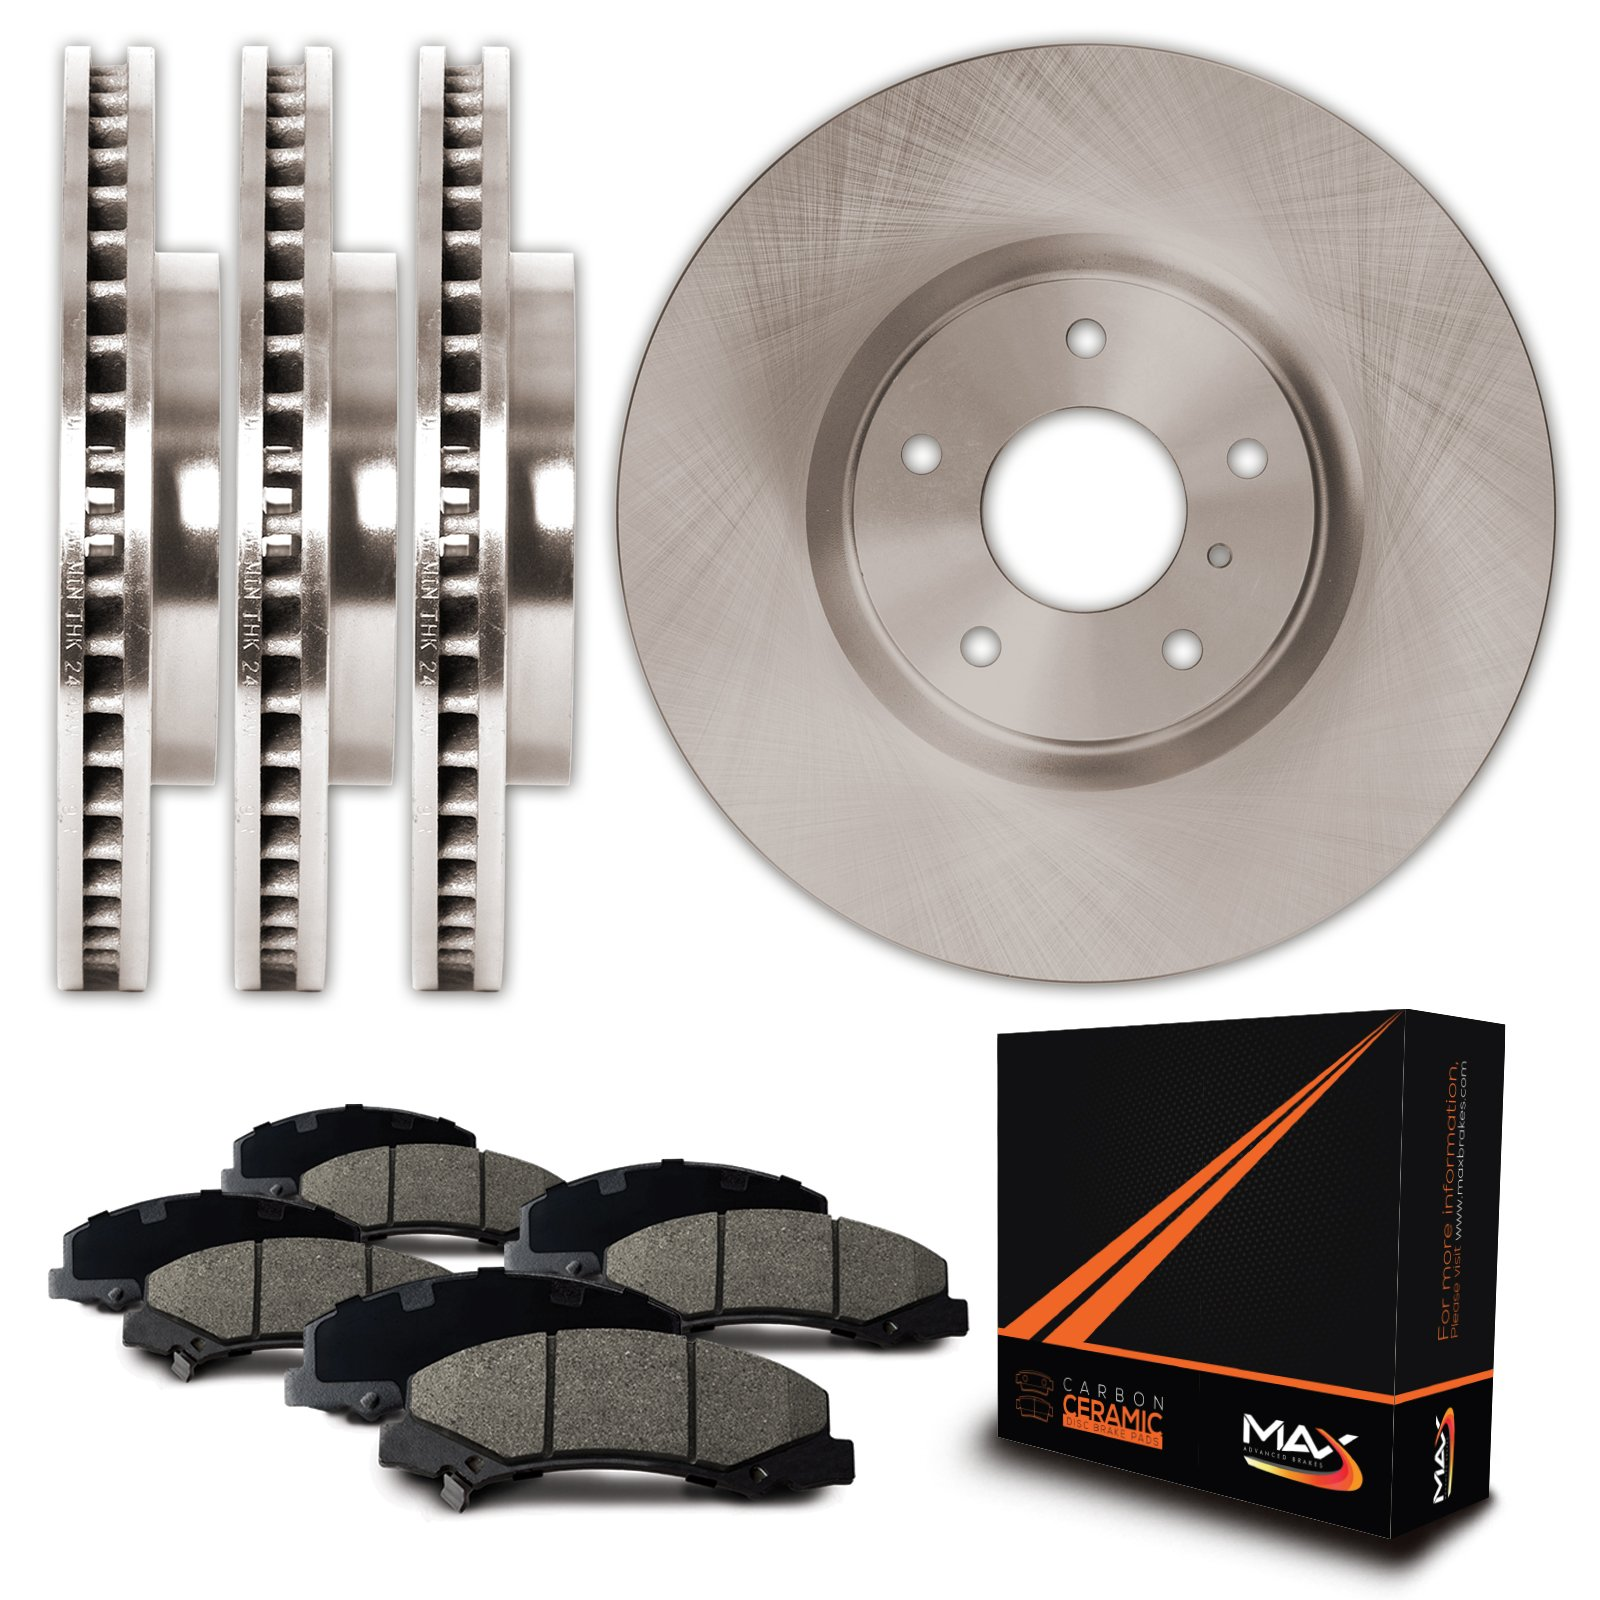 Max Brakes OE Series Rotors w/Ceramic Pads Front + Rear Premium Brake Kit KT011243 [Fits RWD 300 Challenger Charger]